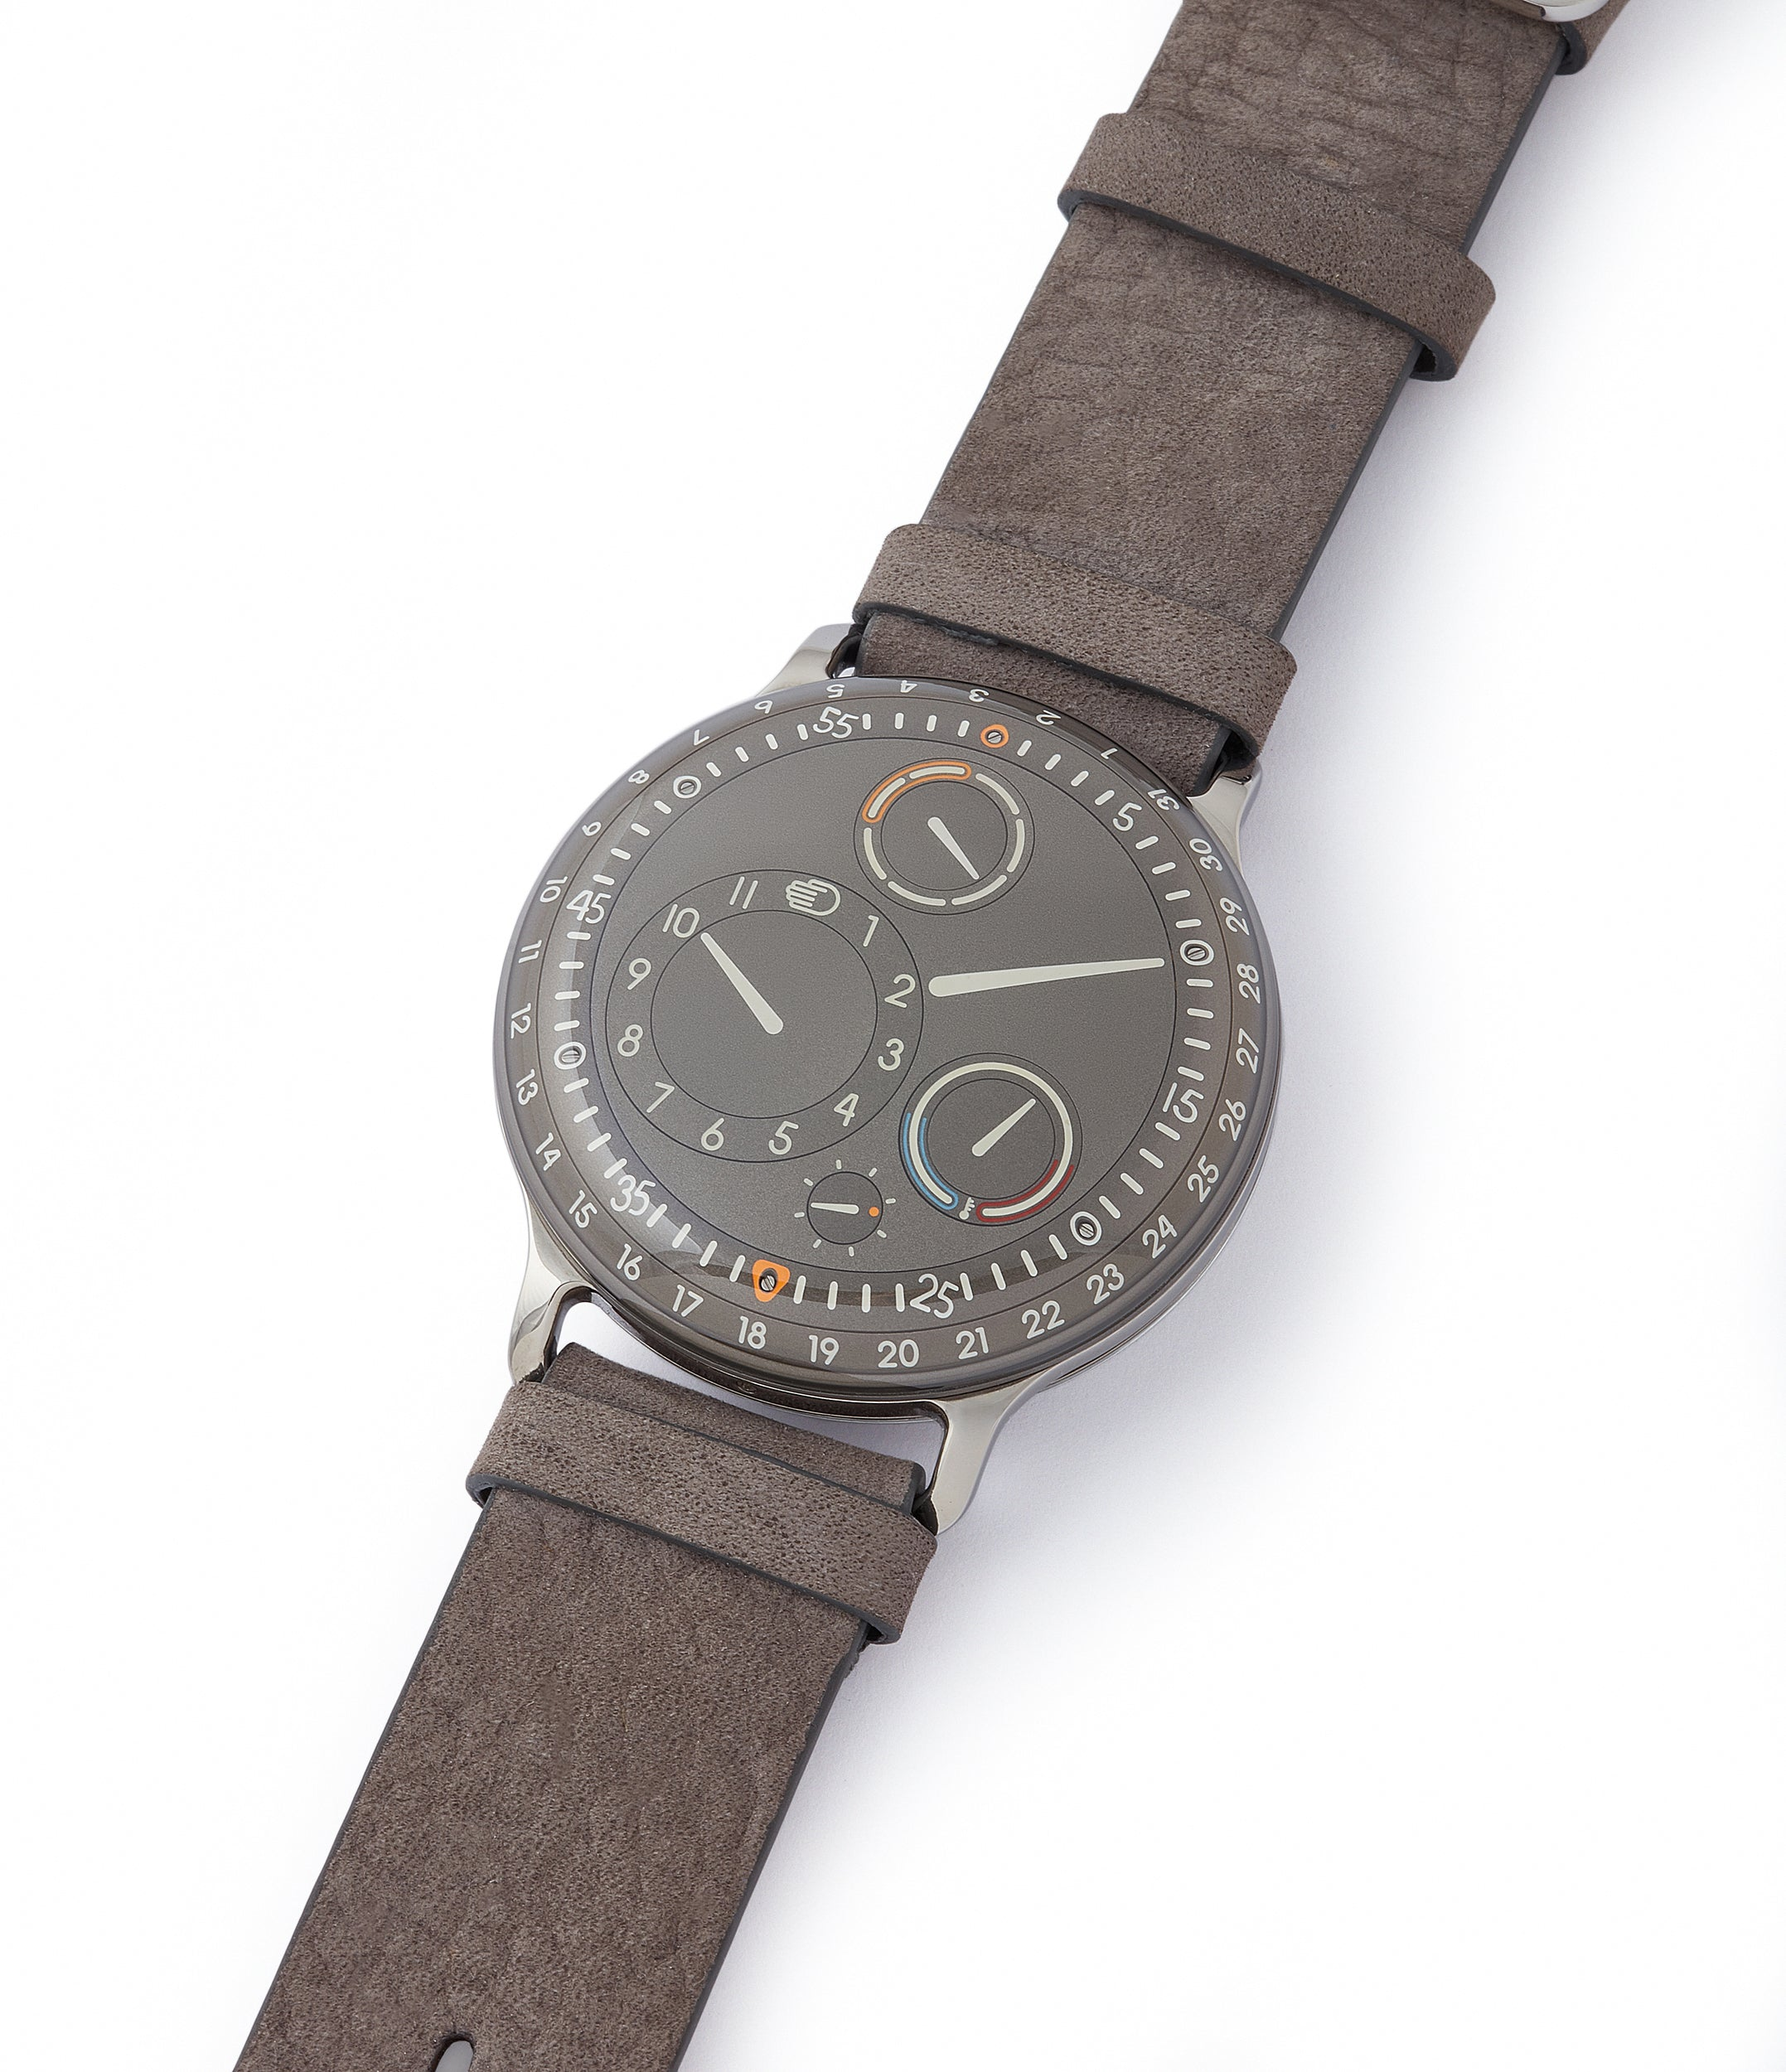 shop Ressence Type 3S oil-filled mechanical watch for sale online at A Collected Man London UK specialist of rare watches